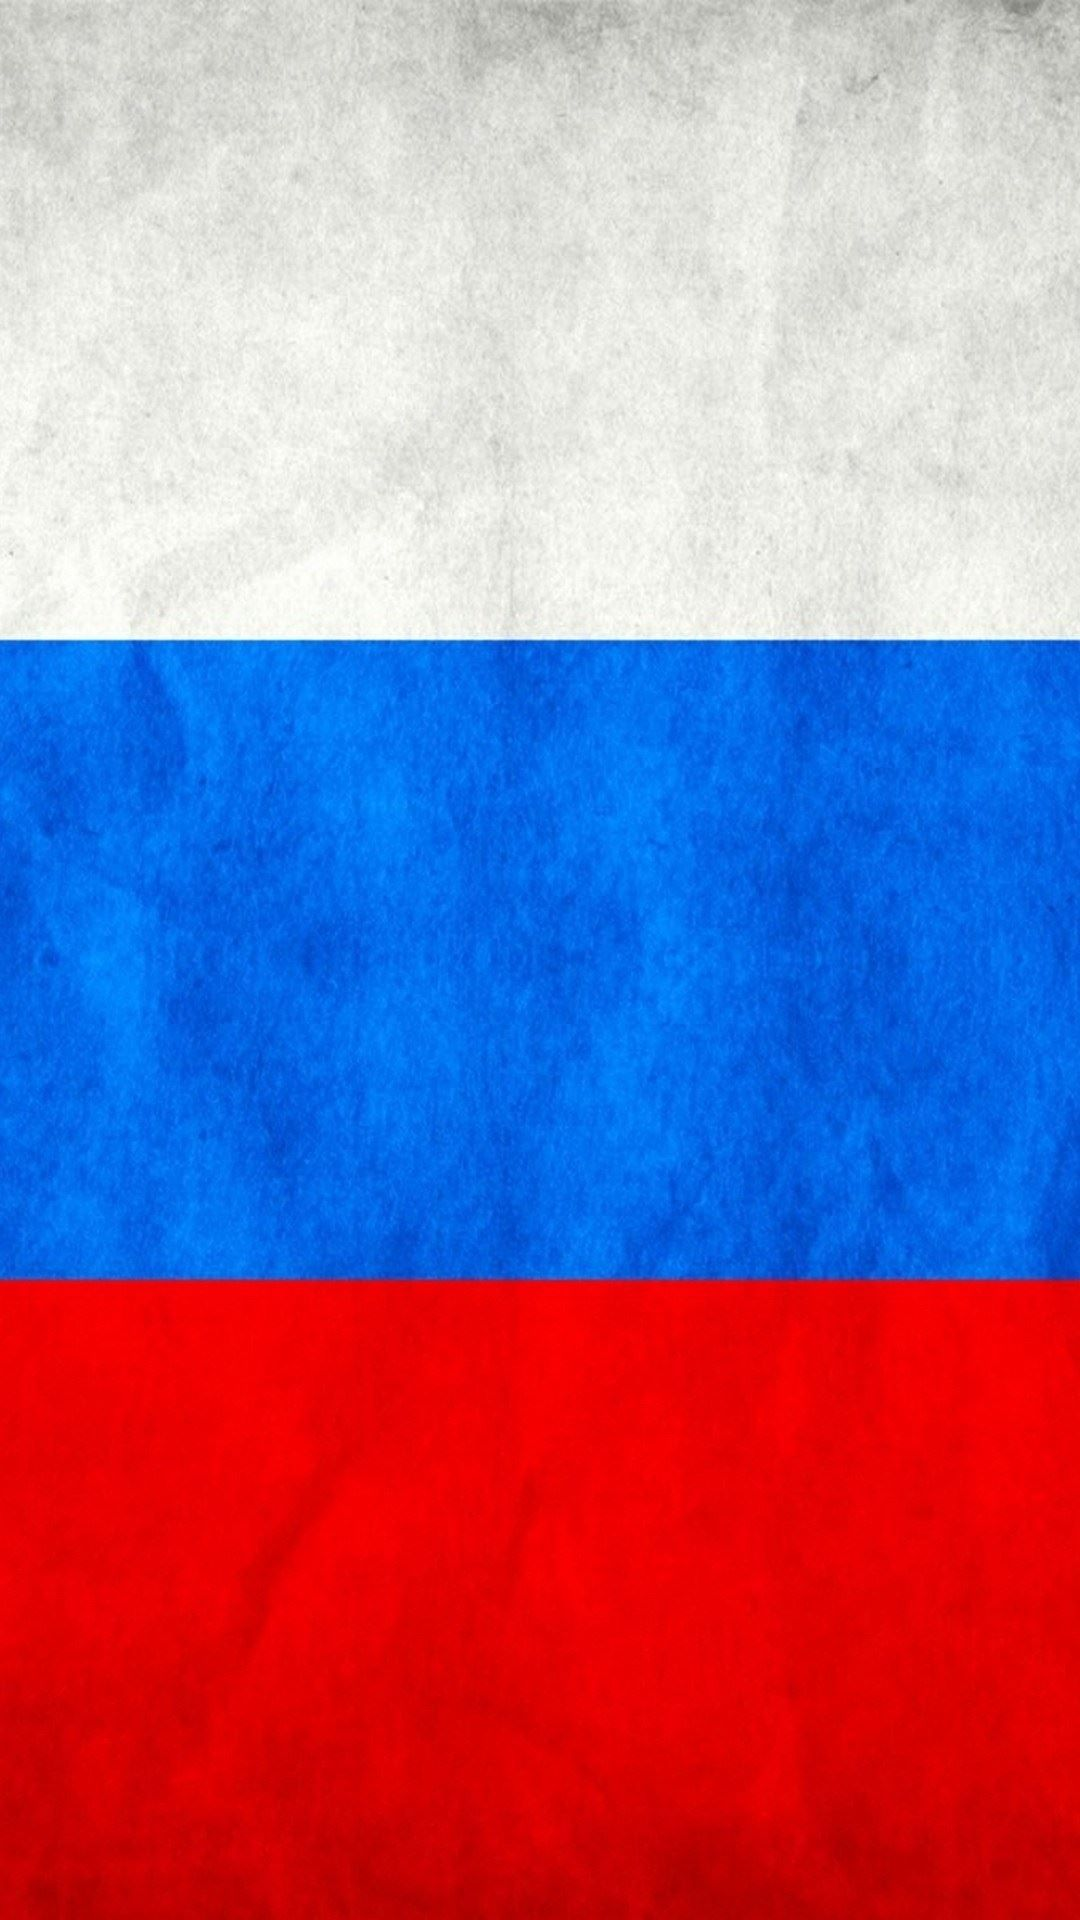 Russia Flag Iphone 6 Plus Hd Wallpaper Jpg 1 080 1 920 Pixels Hintergrundbilder Iphone Hintergrundbilder Flagge Hintergrund